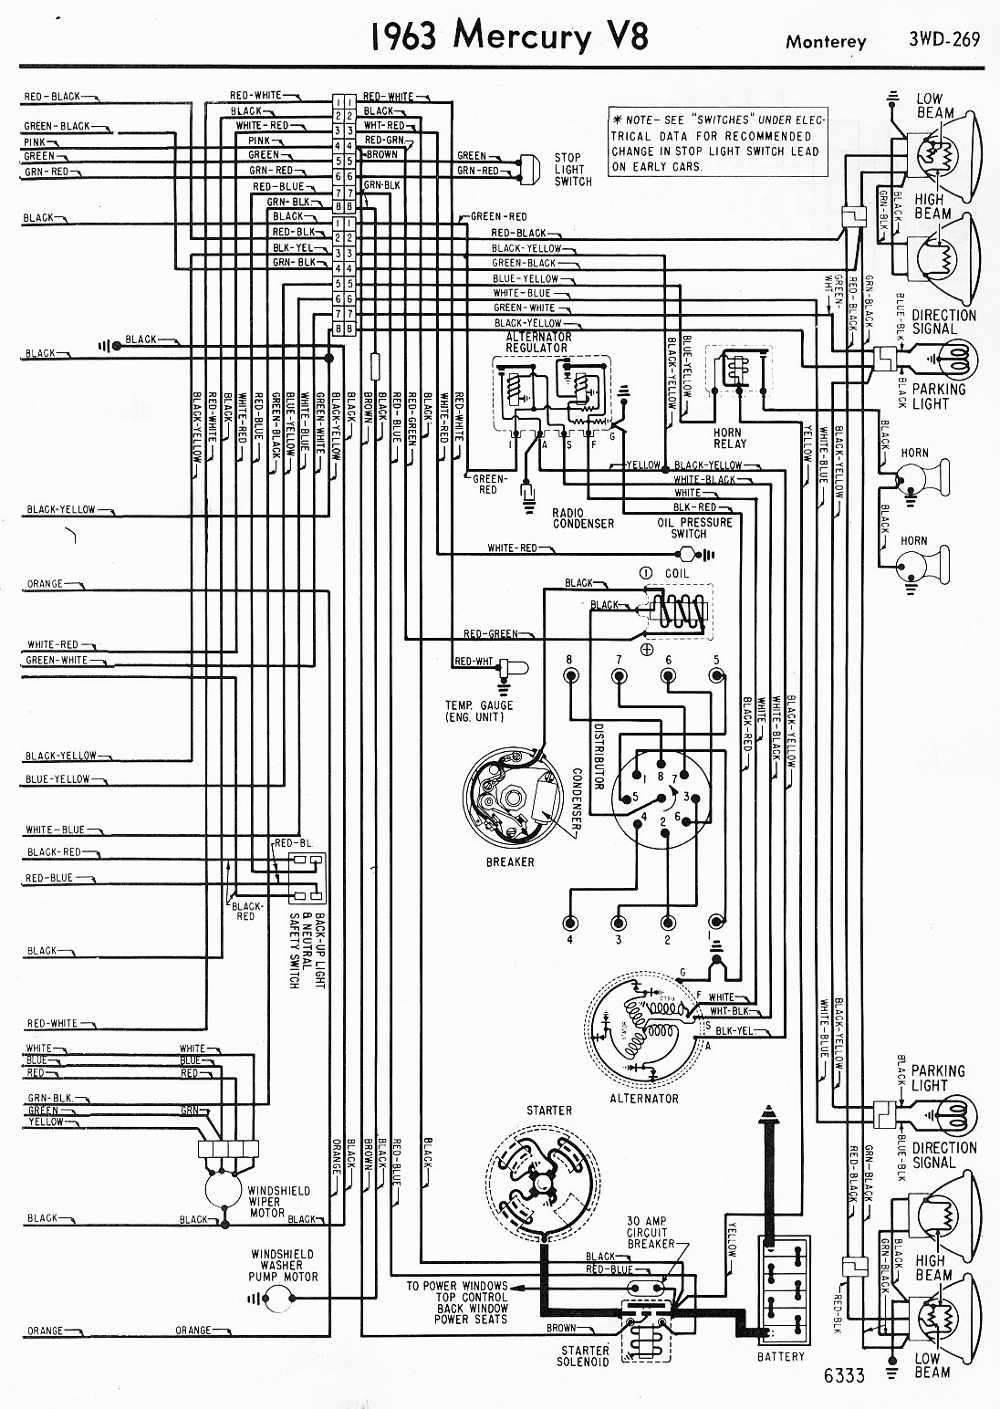 Strange Mercruiser Electrical Diagrams Wiring Library Wiring Cloud Usnesfoxcilixyz